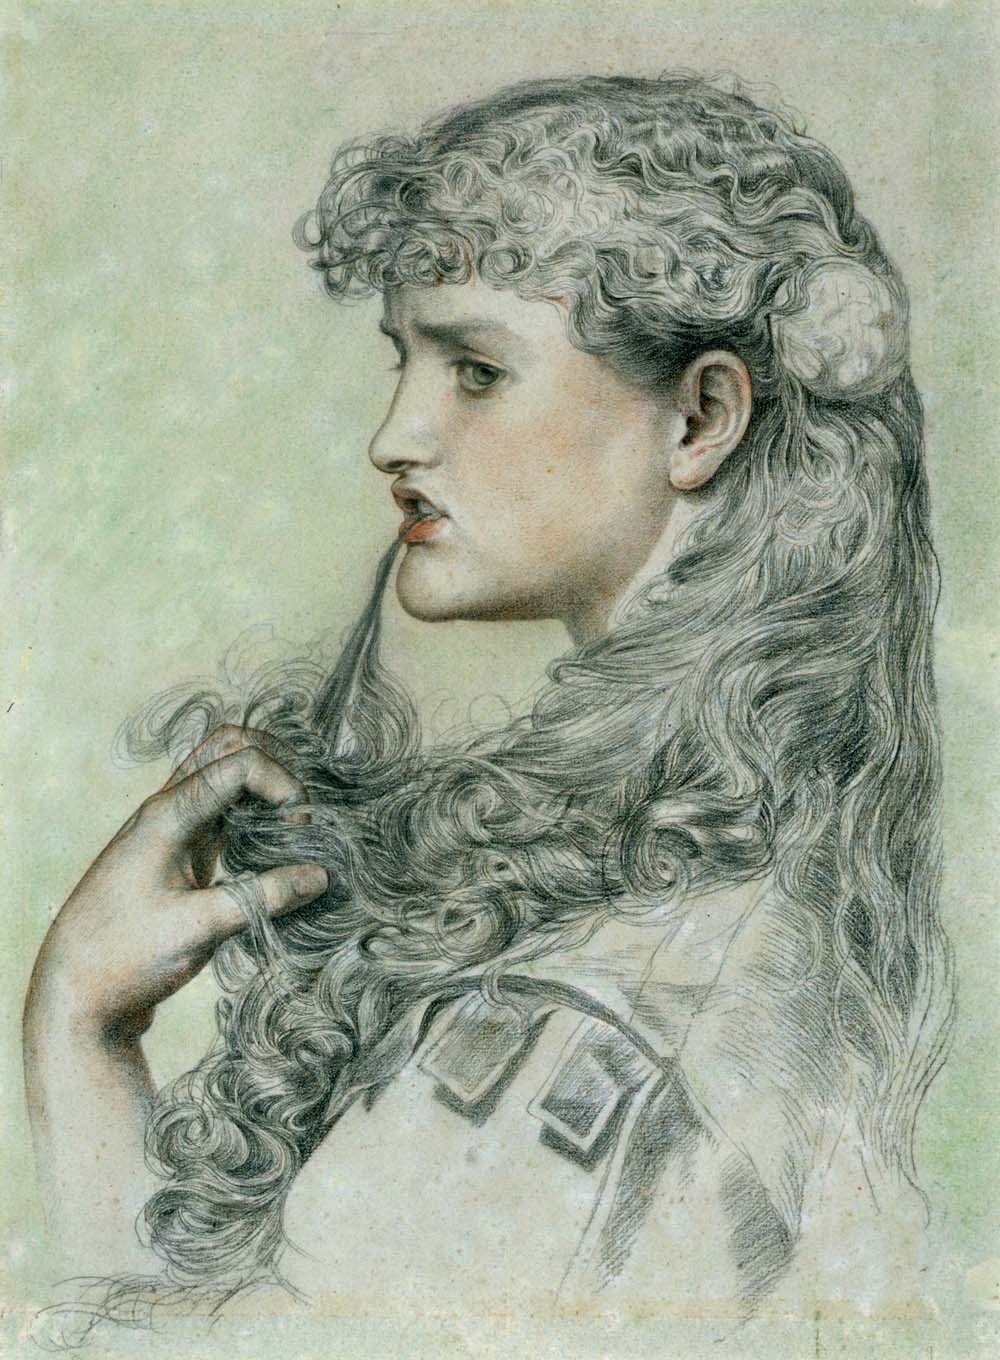 Frederick Sandys: Proud Maisie, 1868, pencil and crayon on paper, Victoria and Albert Museum, London